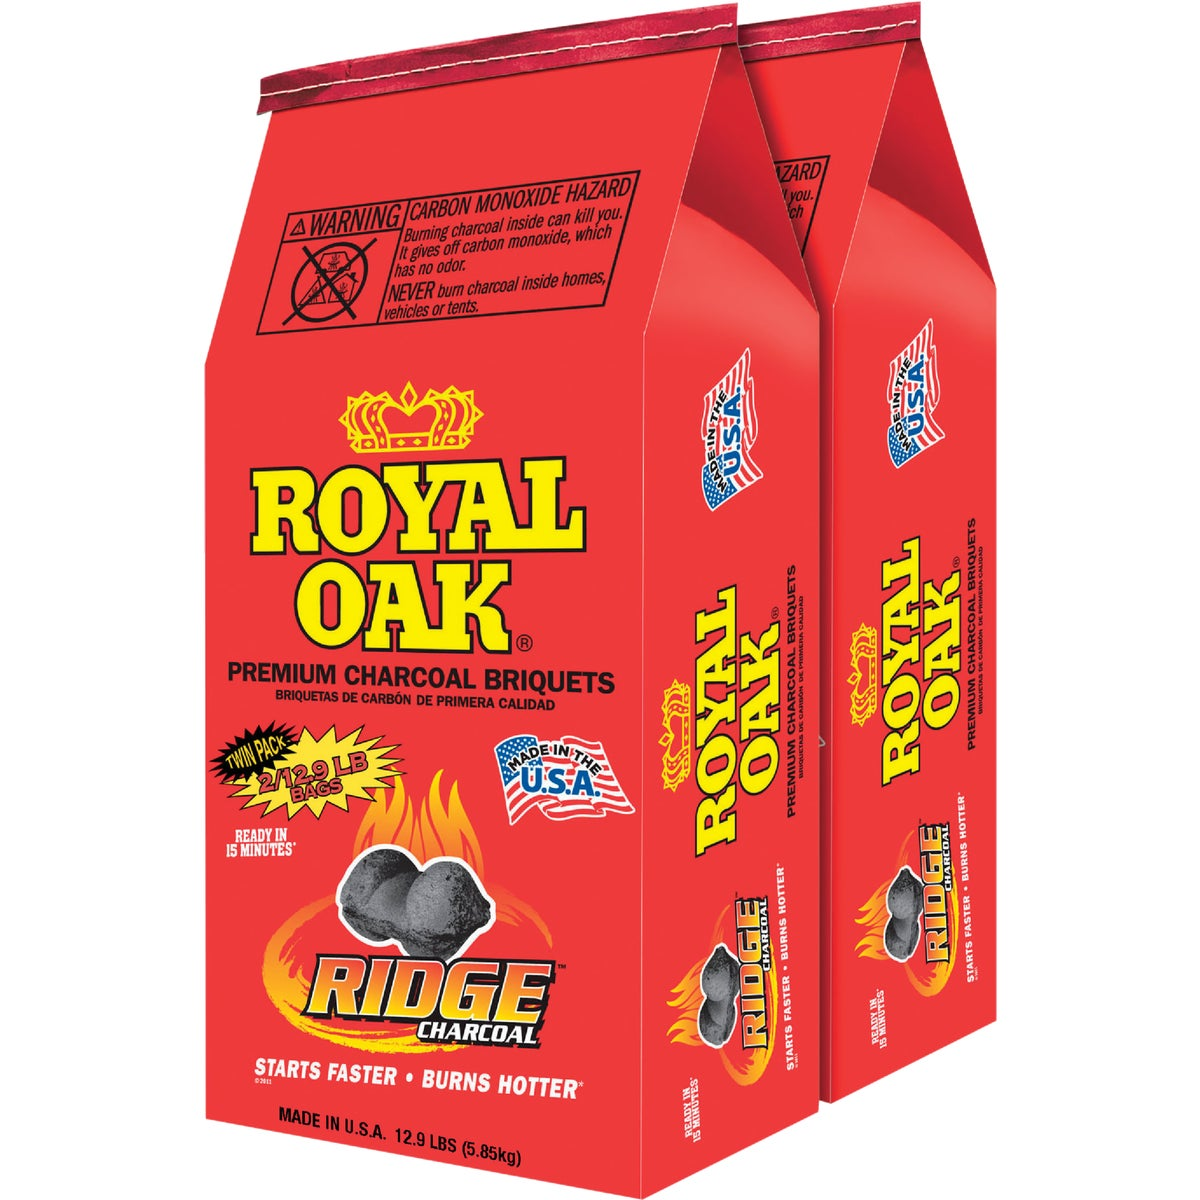 2PK 13.9LB REG CHARCOAL - 192-294-249 by Royal Oak